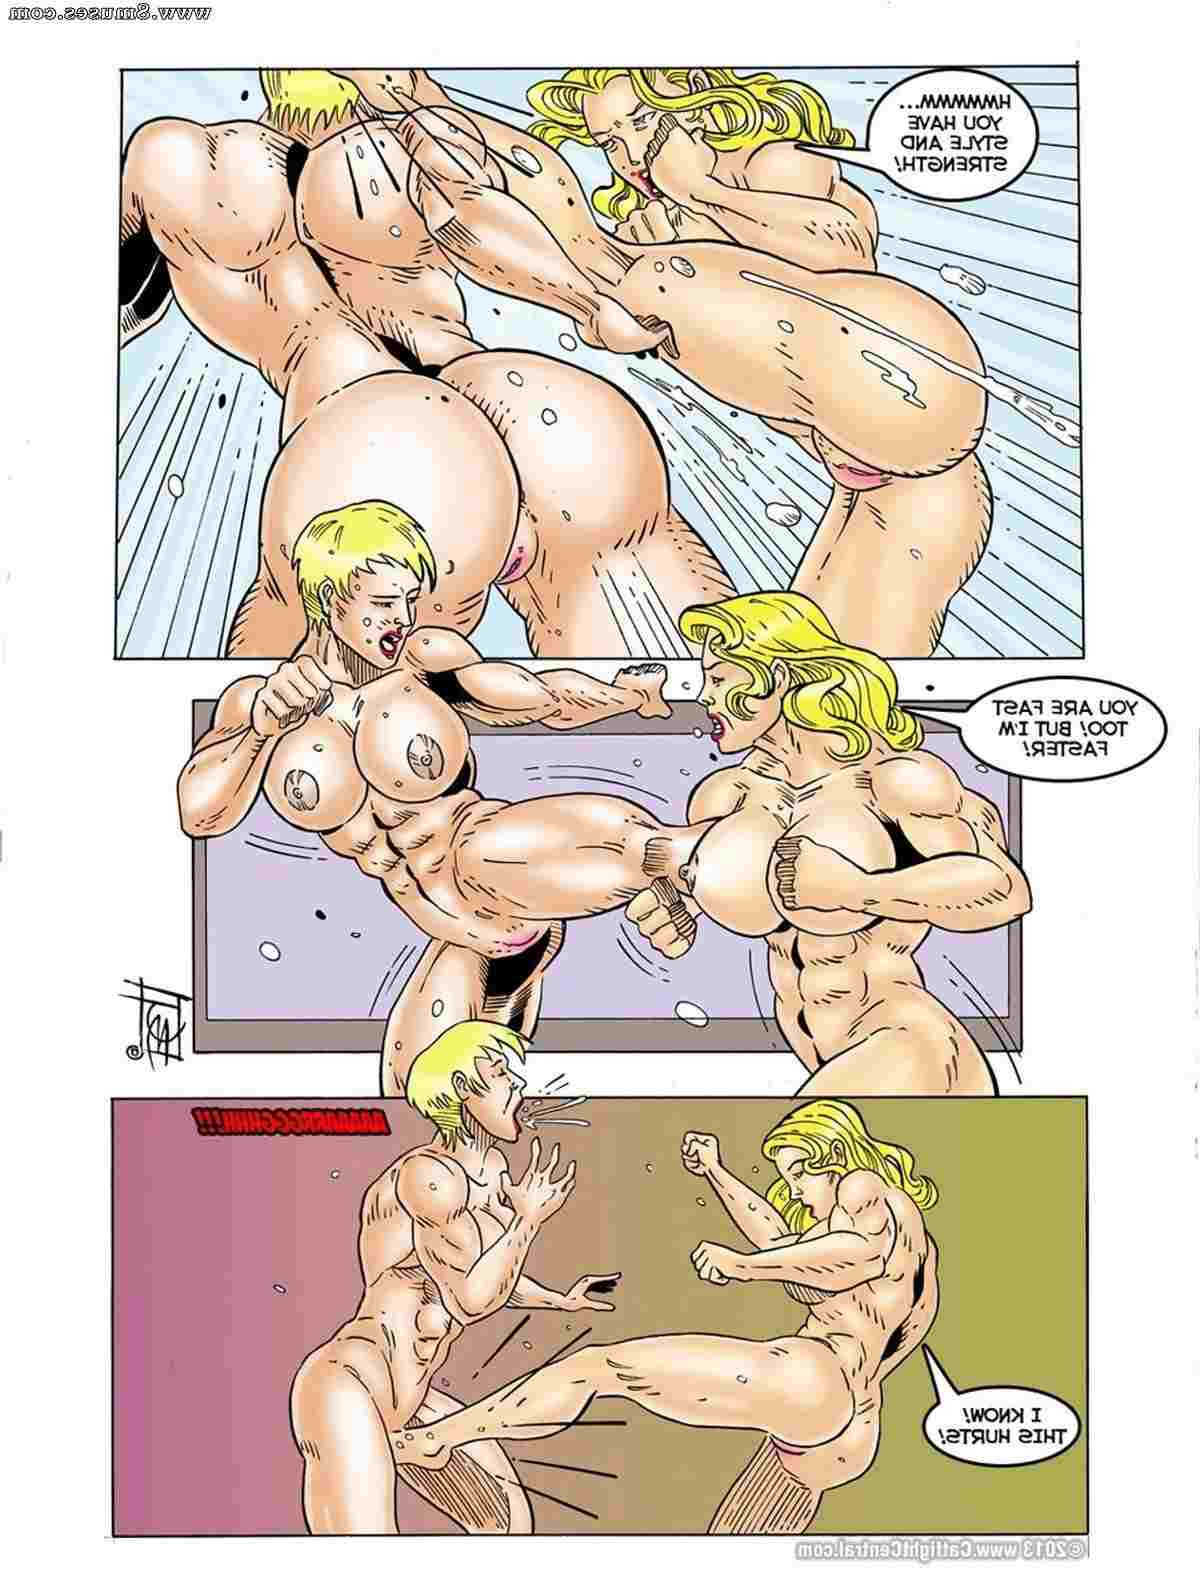 Central-Comics/Catfight-Central/Prison-Bitches Prison_Bitches__8muses_-_Sex_and_Porn_Comics_52.jpg